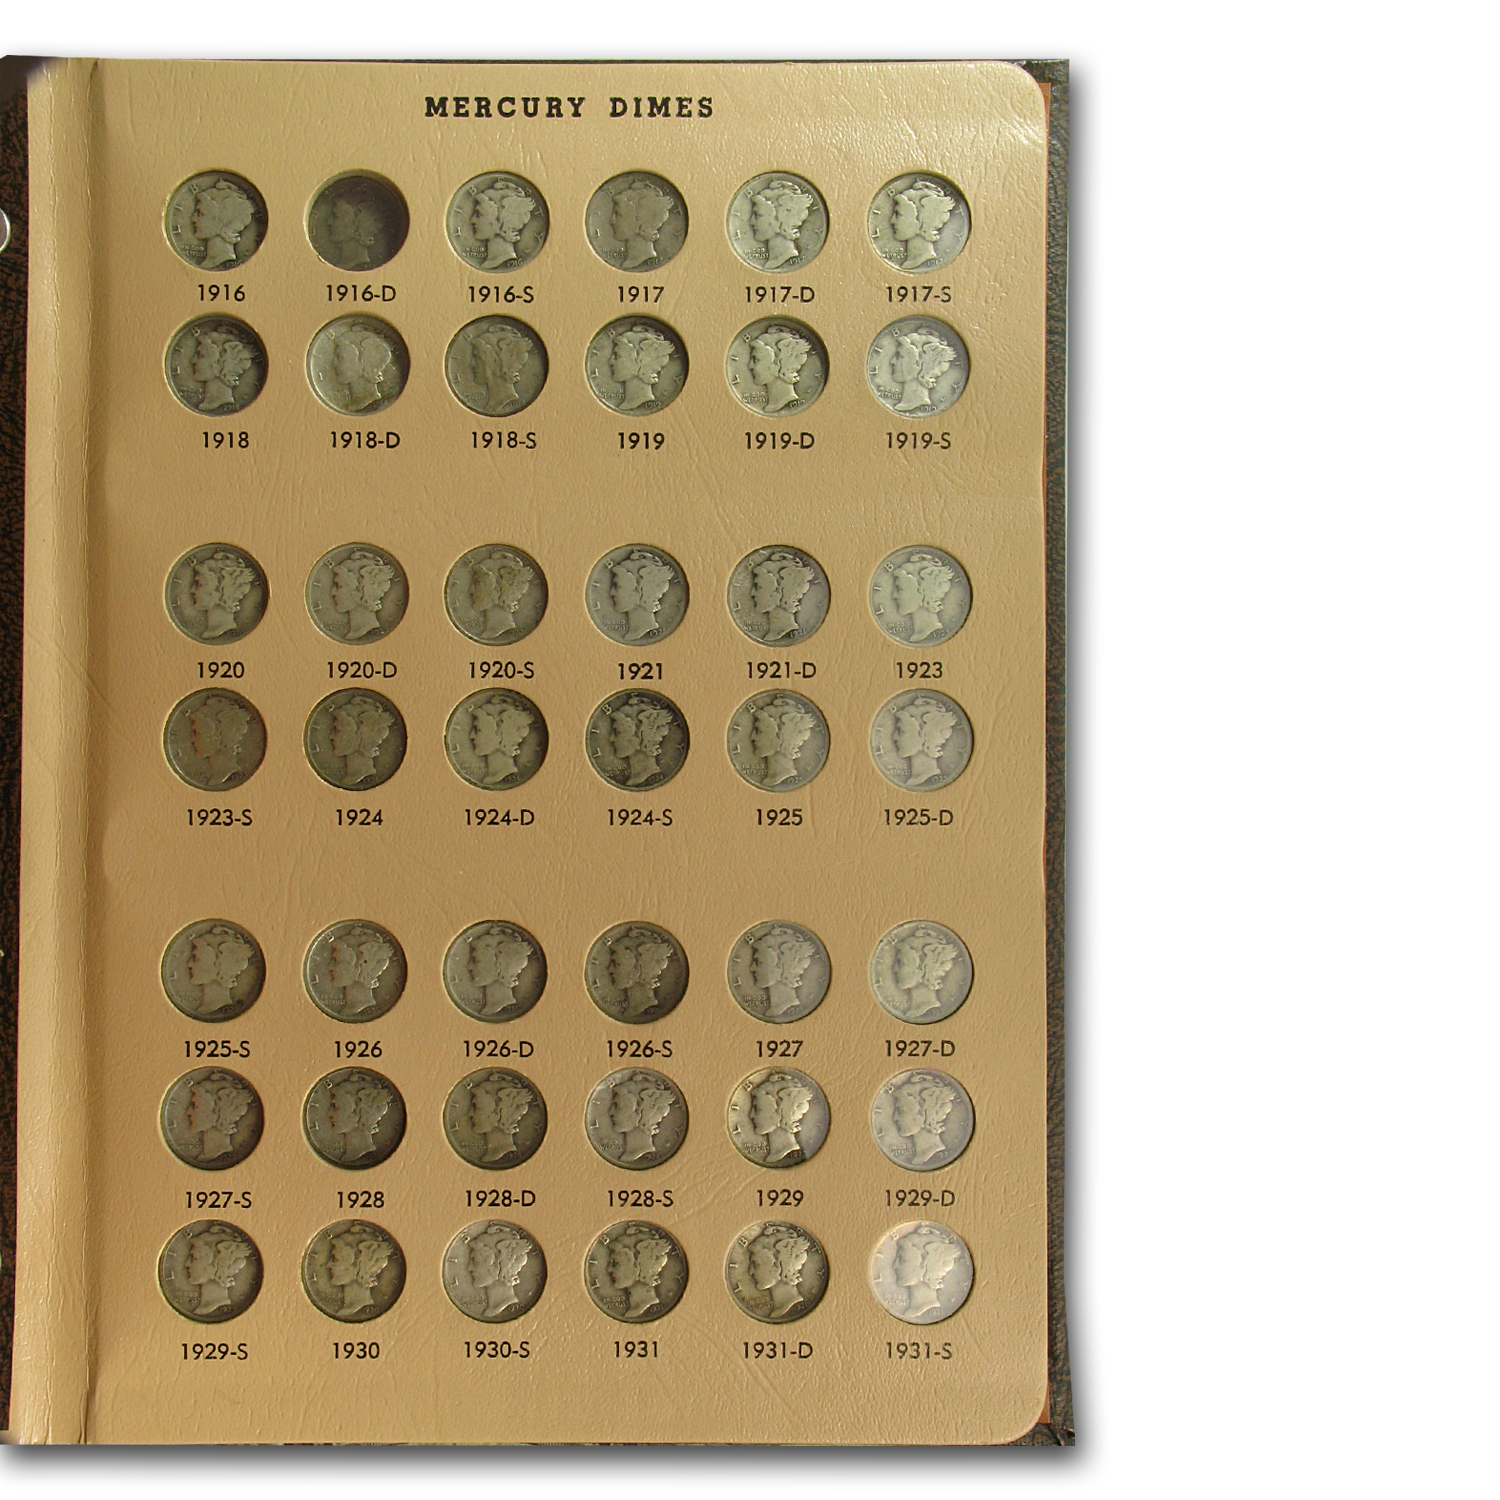 1916-1945 Near Complete Mercury Dime Set In Dansco Album